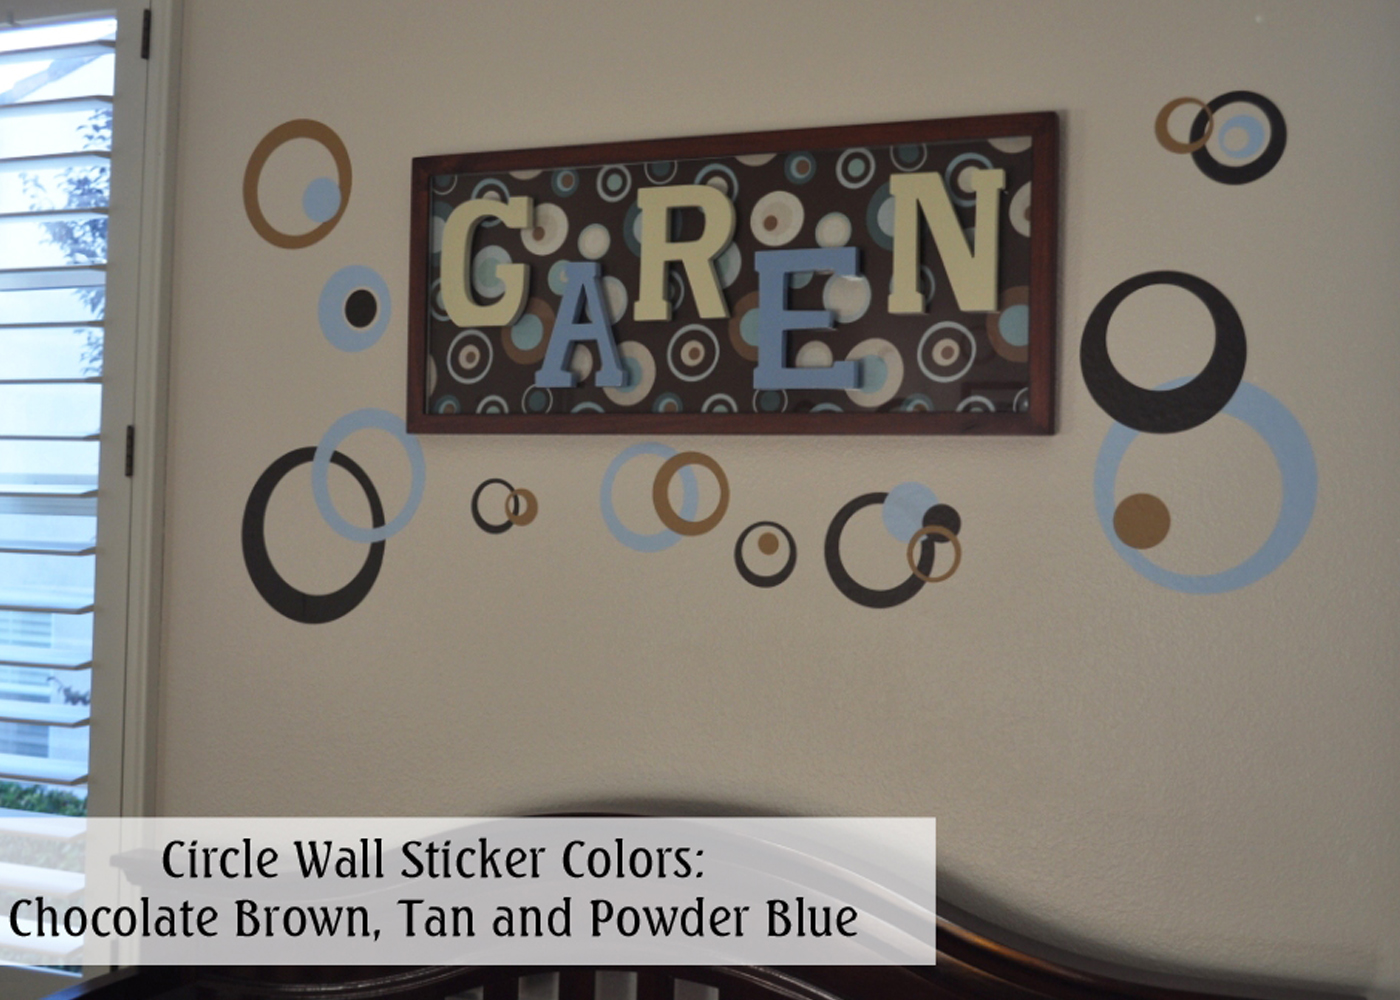 circles-rings-dots-wall-stickers-in-baby-boy-room-copy.jpg